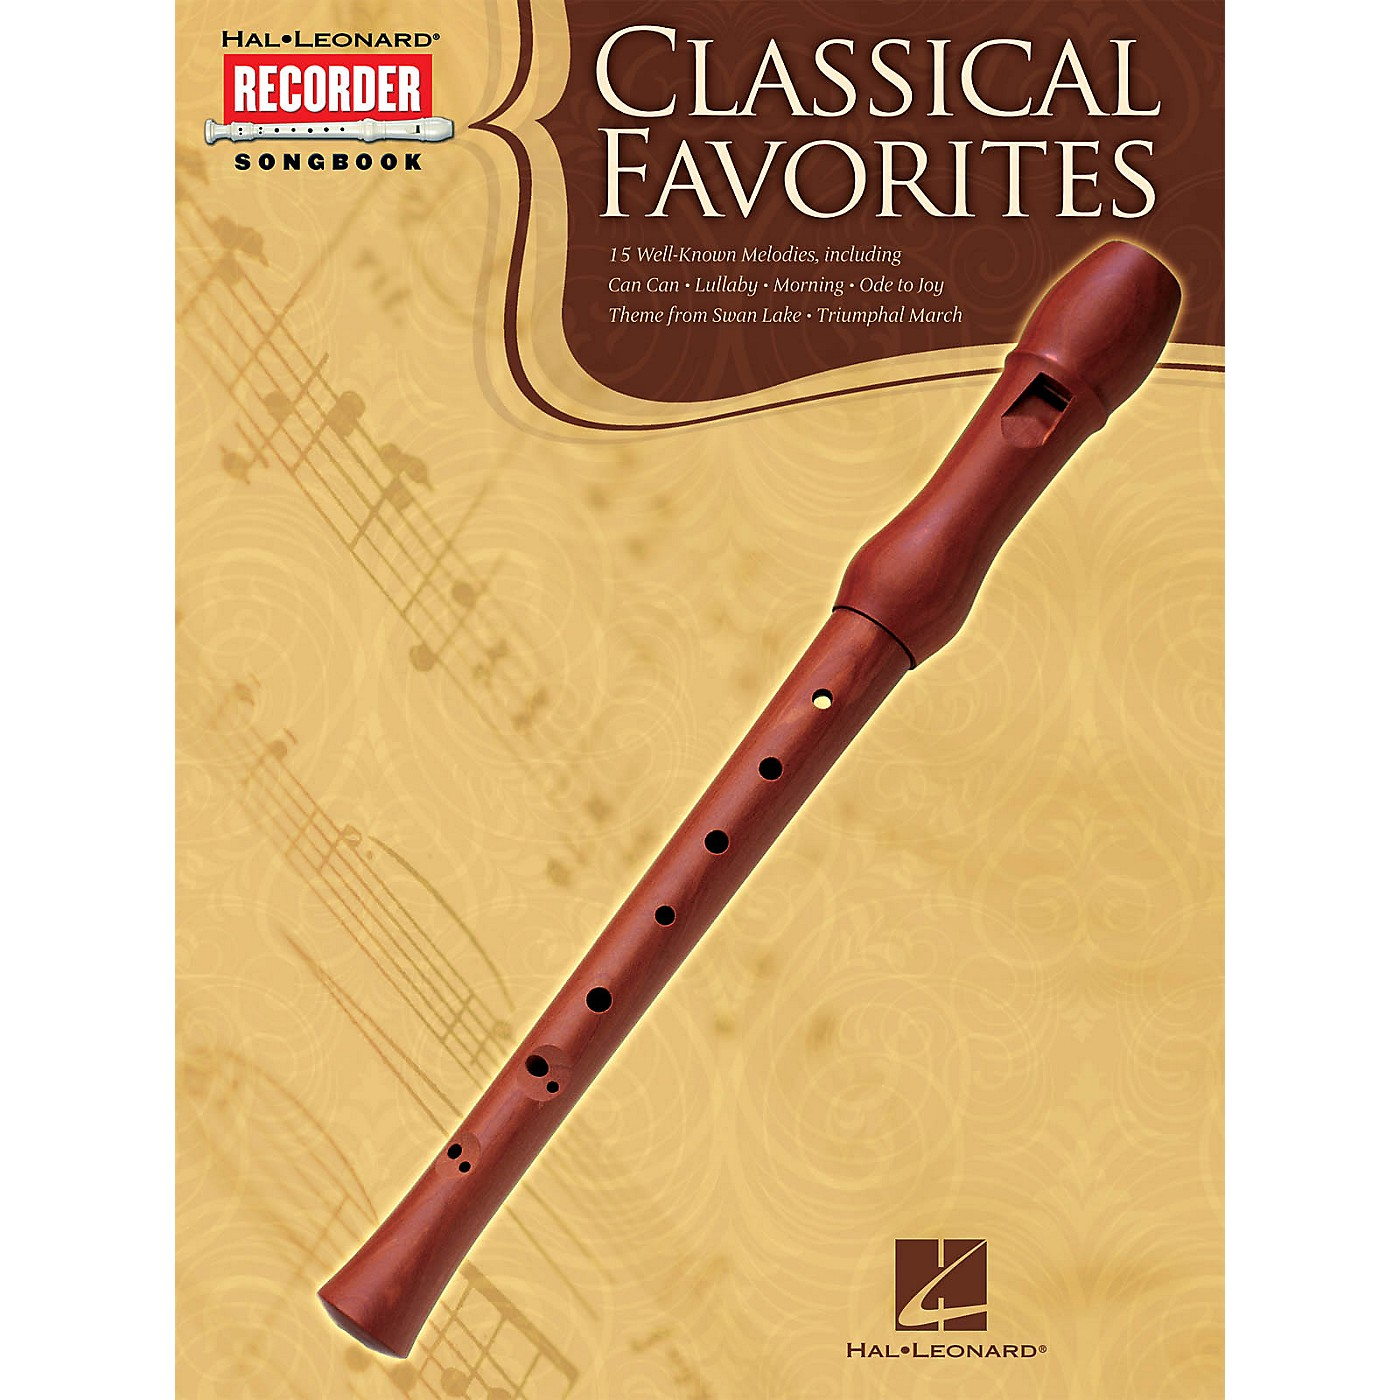 Hal Leonard Classical Favorites (Hal Leonard Recorder Songbook) Recorder Series Softcover thumbnail